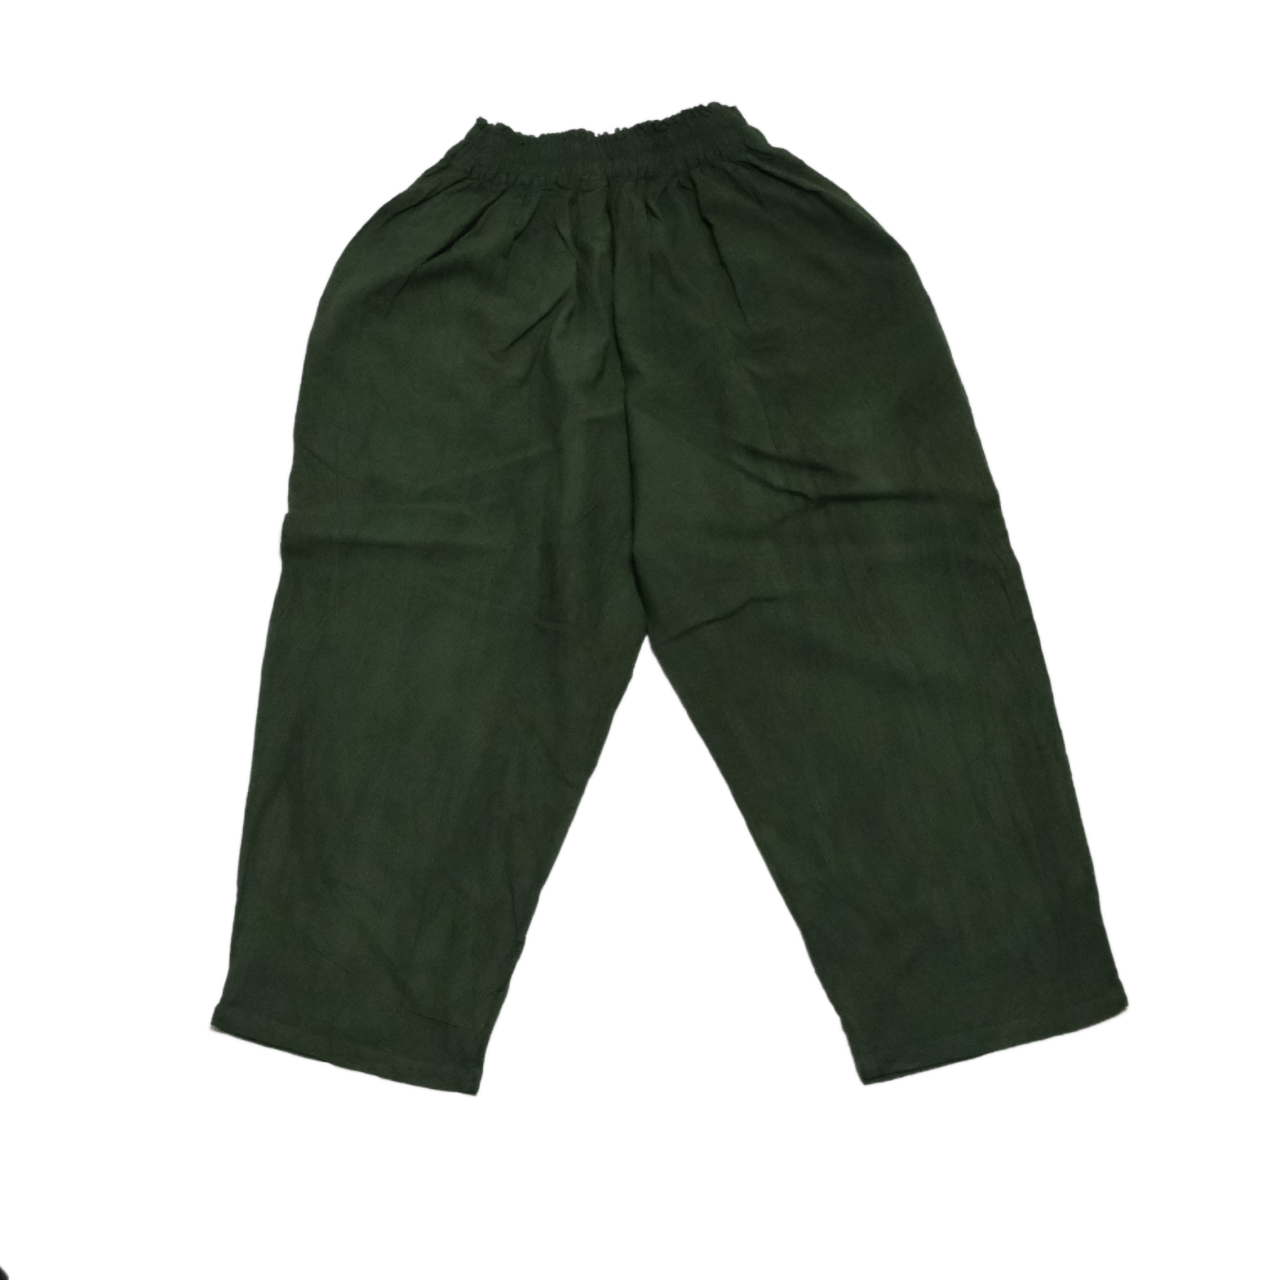 【select】[S size]Tapered pants  from TAIWAN(テーパードパンツ)J-002